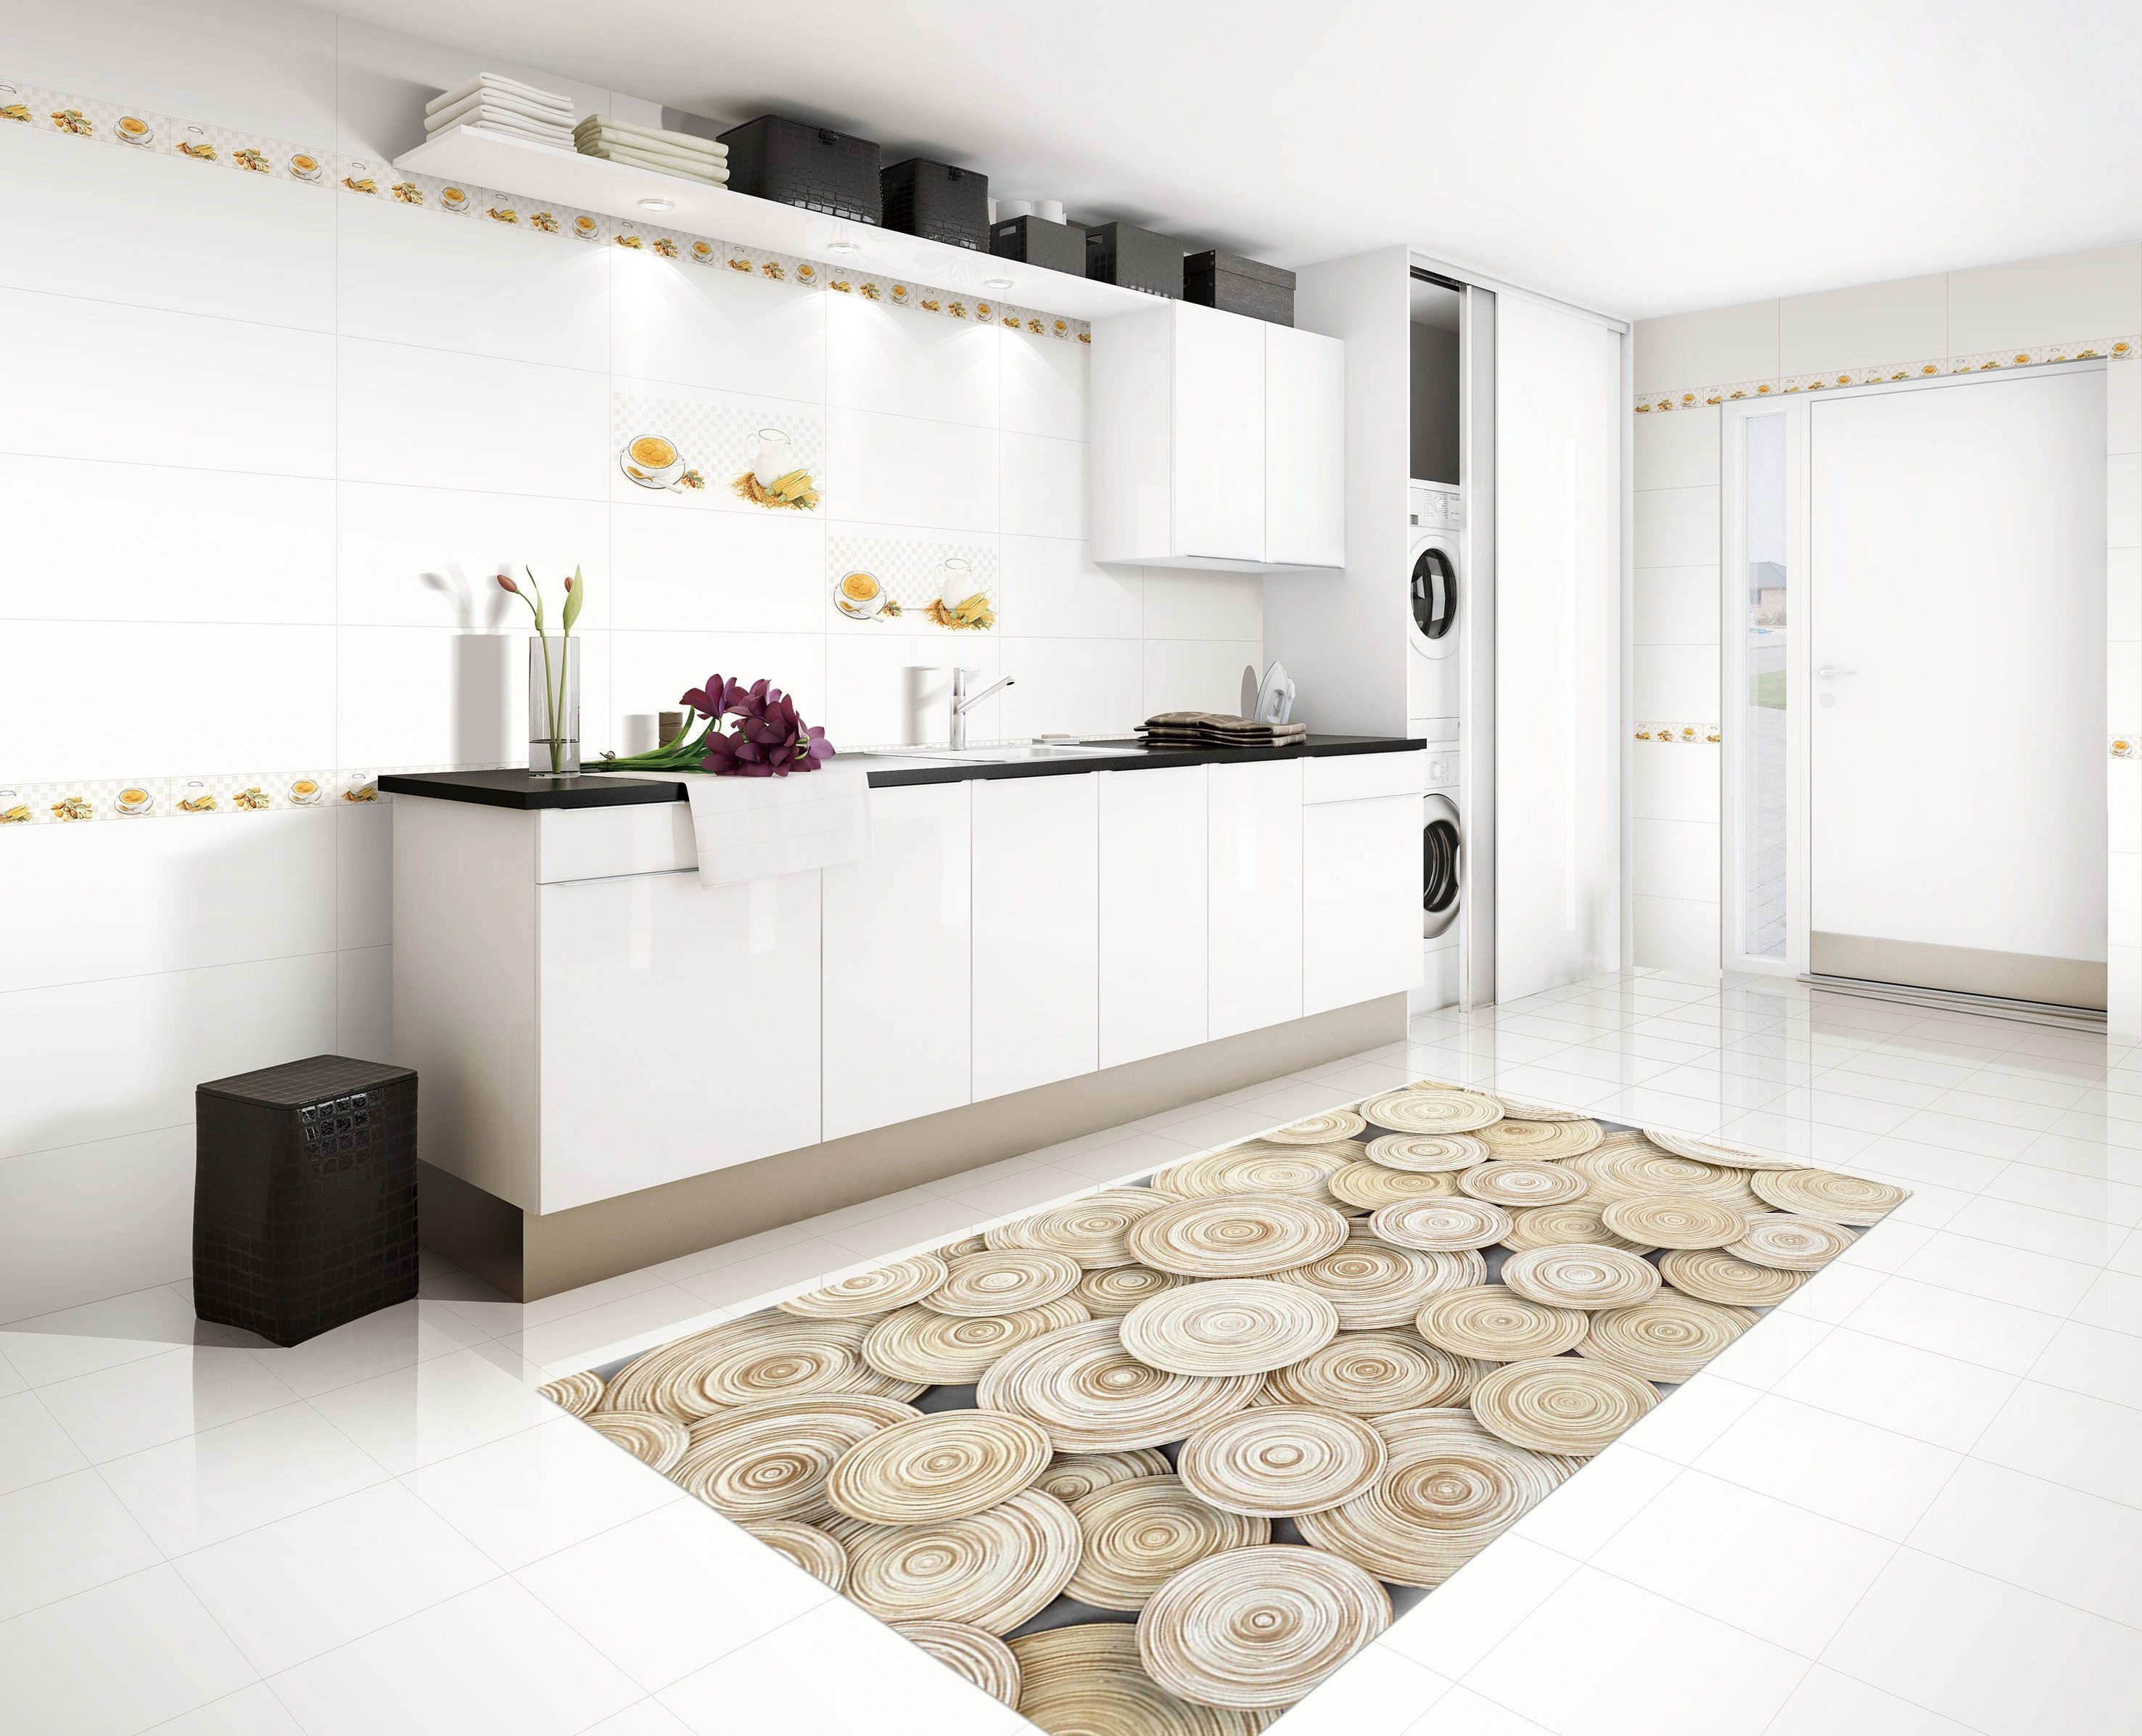 3D Circles Pattern 156 Kitchen Mat Floor Mural Wallpaper AJ Wallpaper